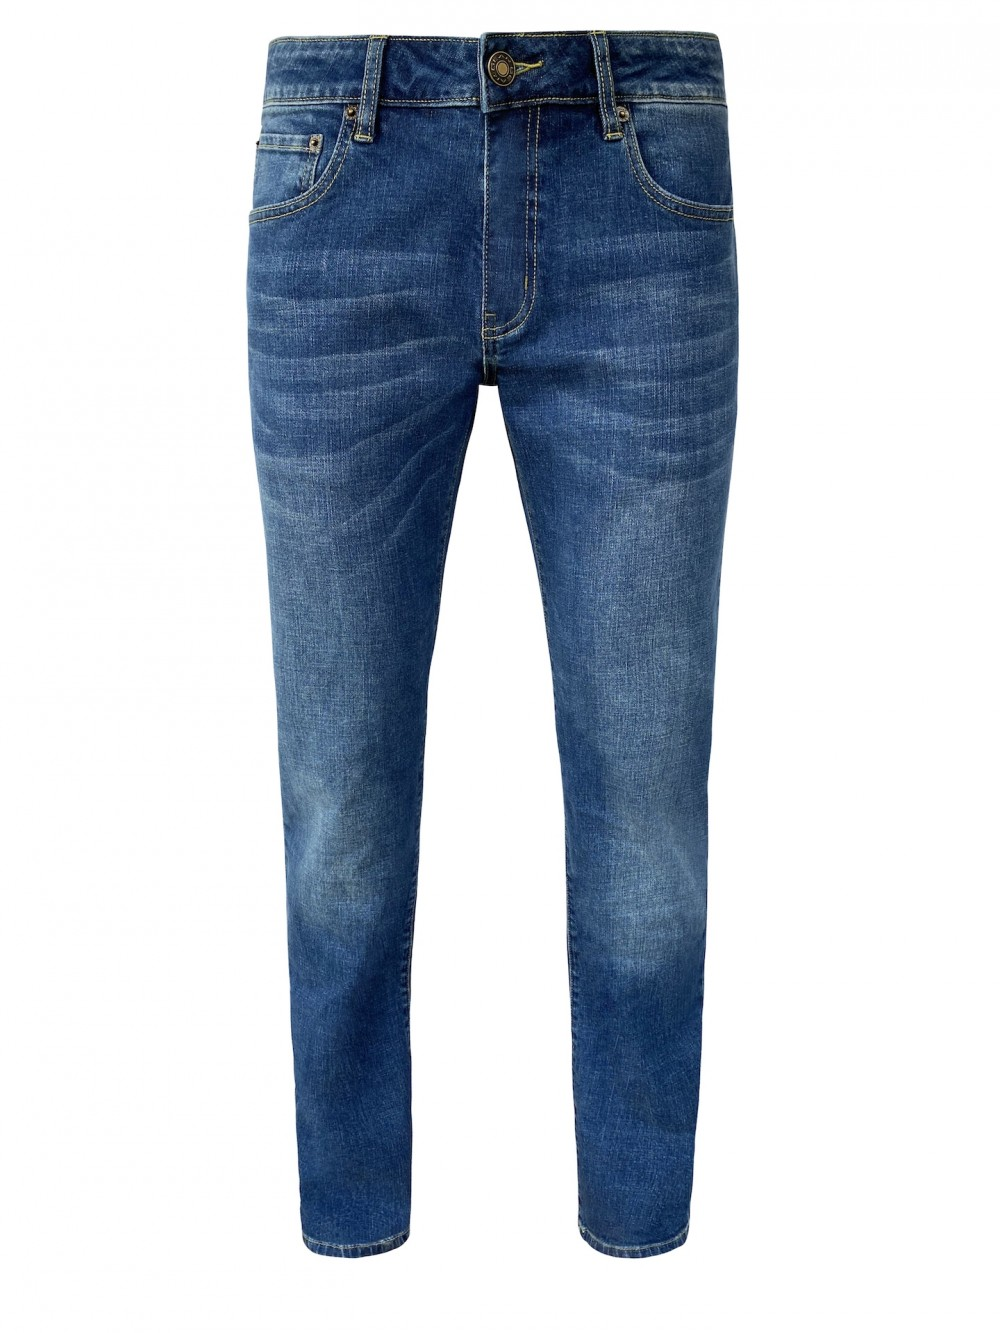 Mens Jeans JSM314 G589 slim fit - Blue